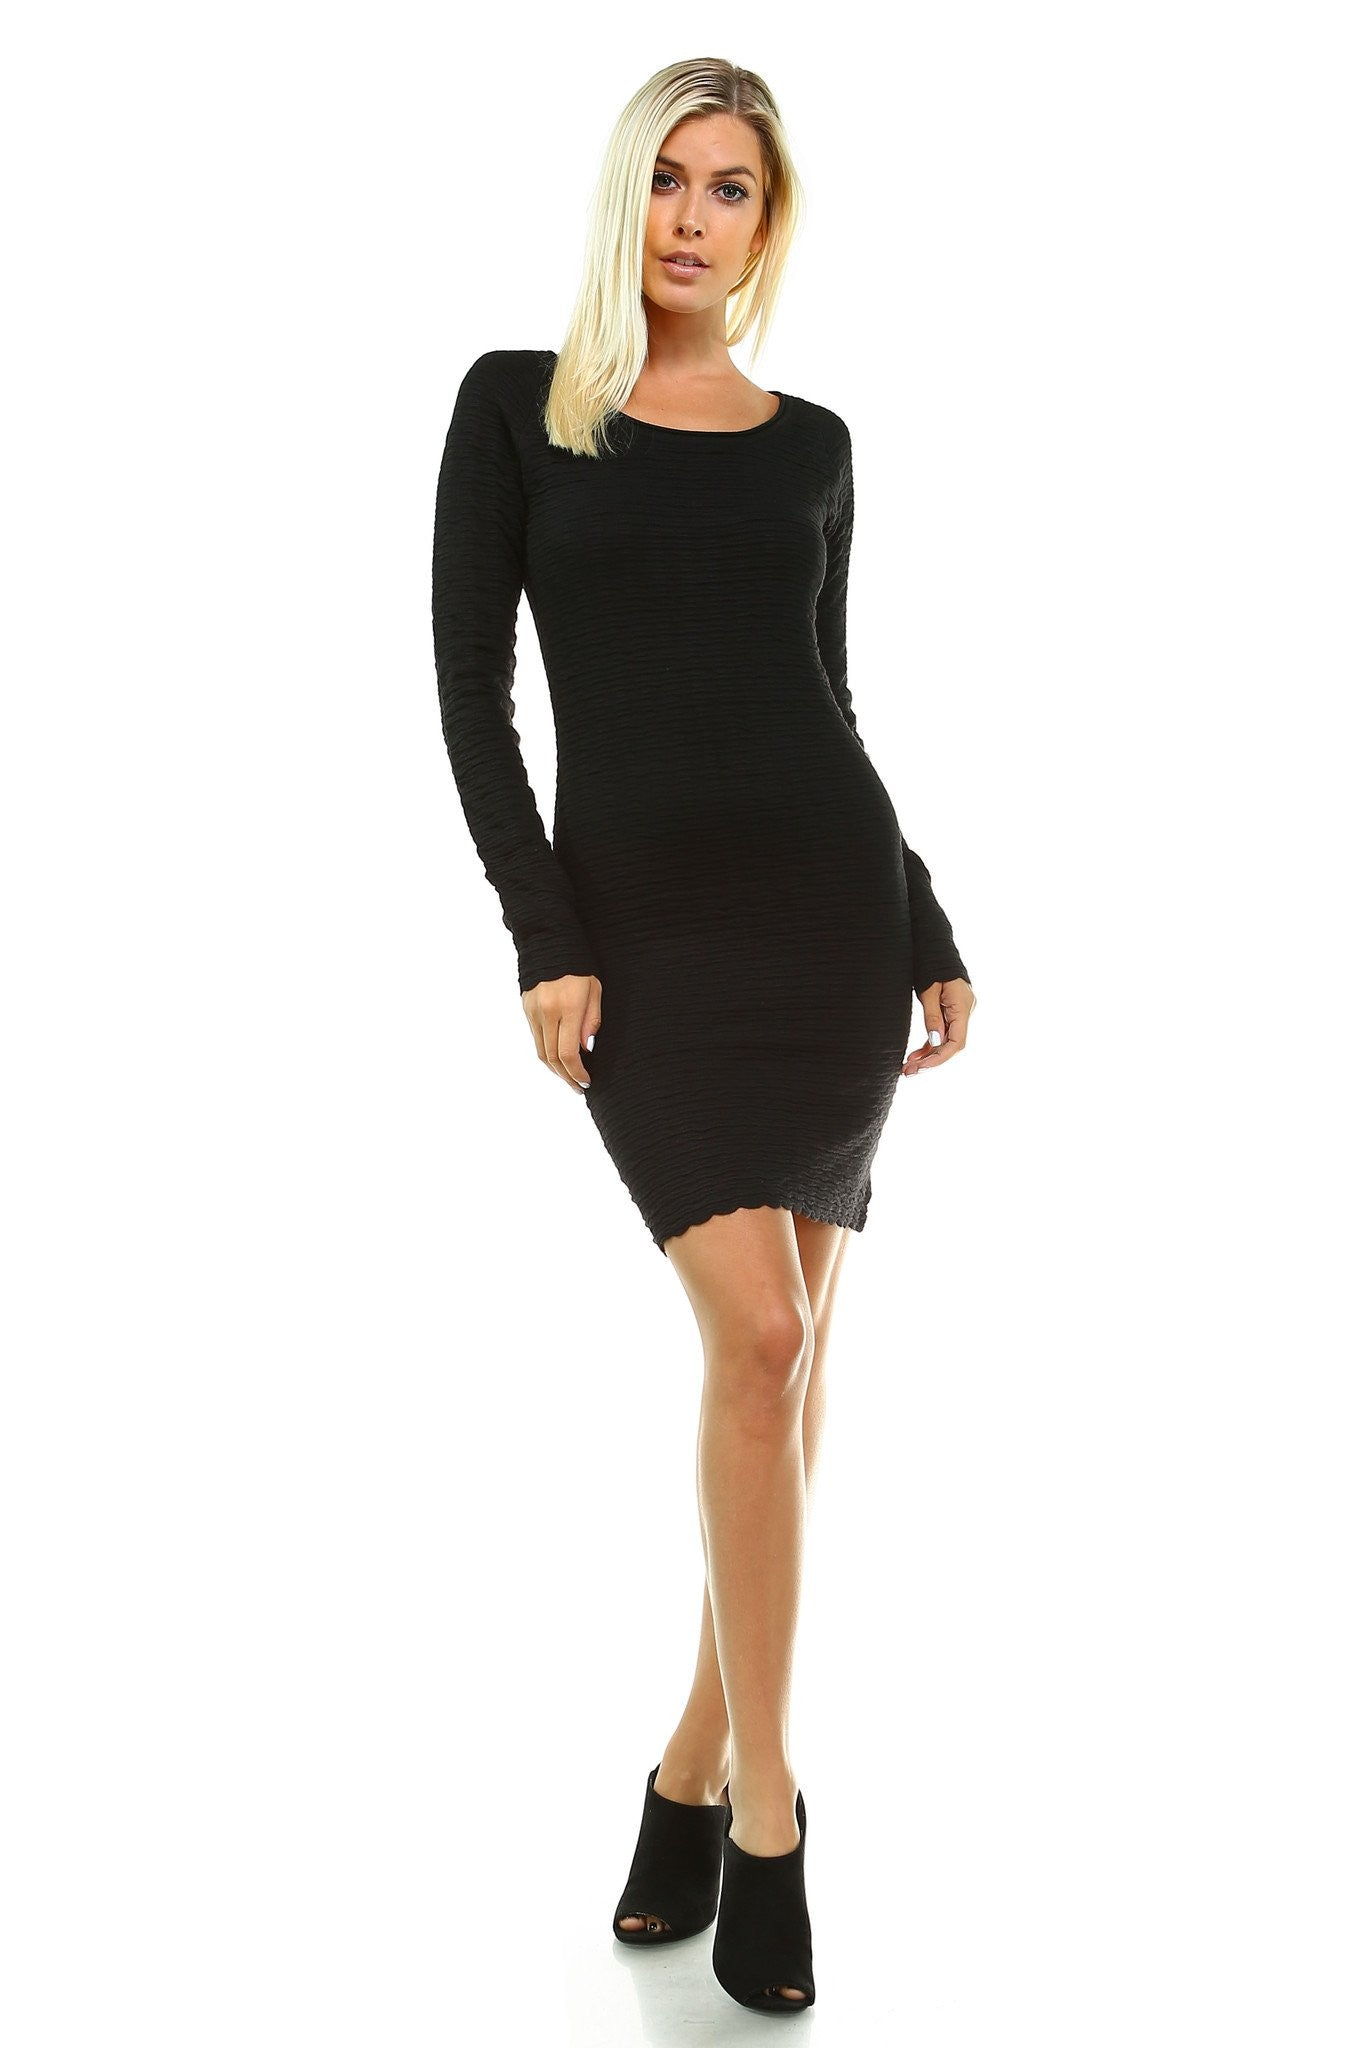 7fb73bcaeb0 Women s Long Sleeve Textured Sweater Dress - Womerio